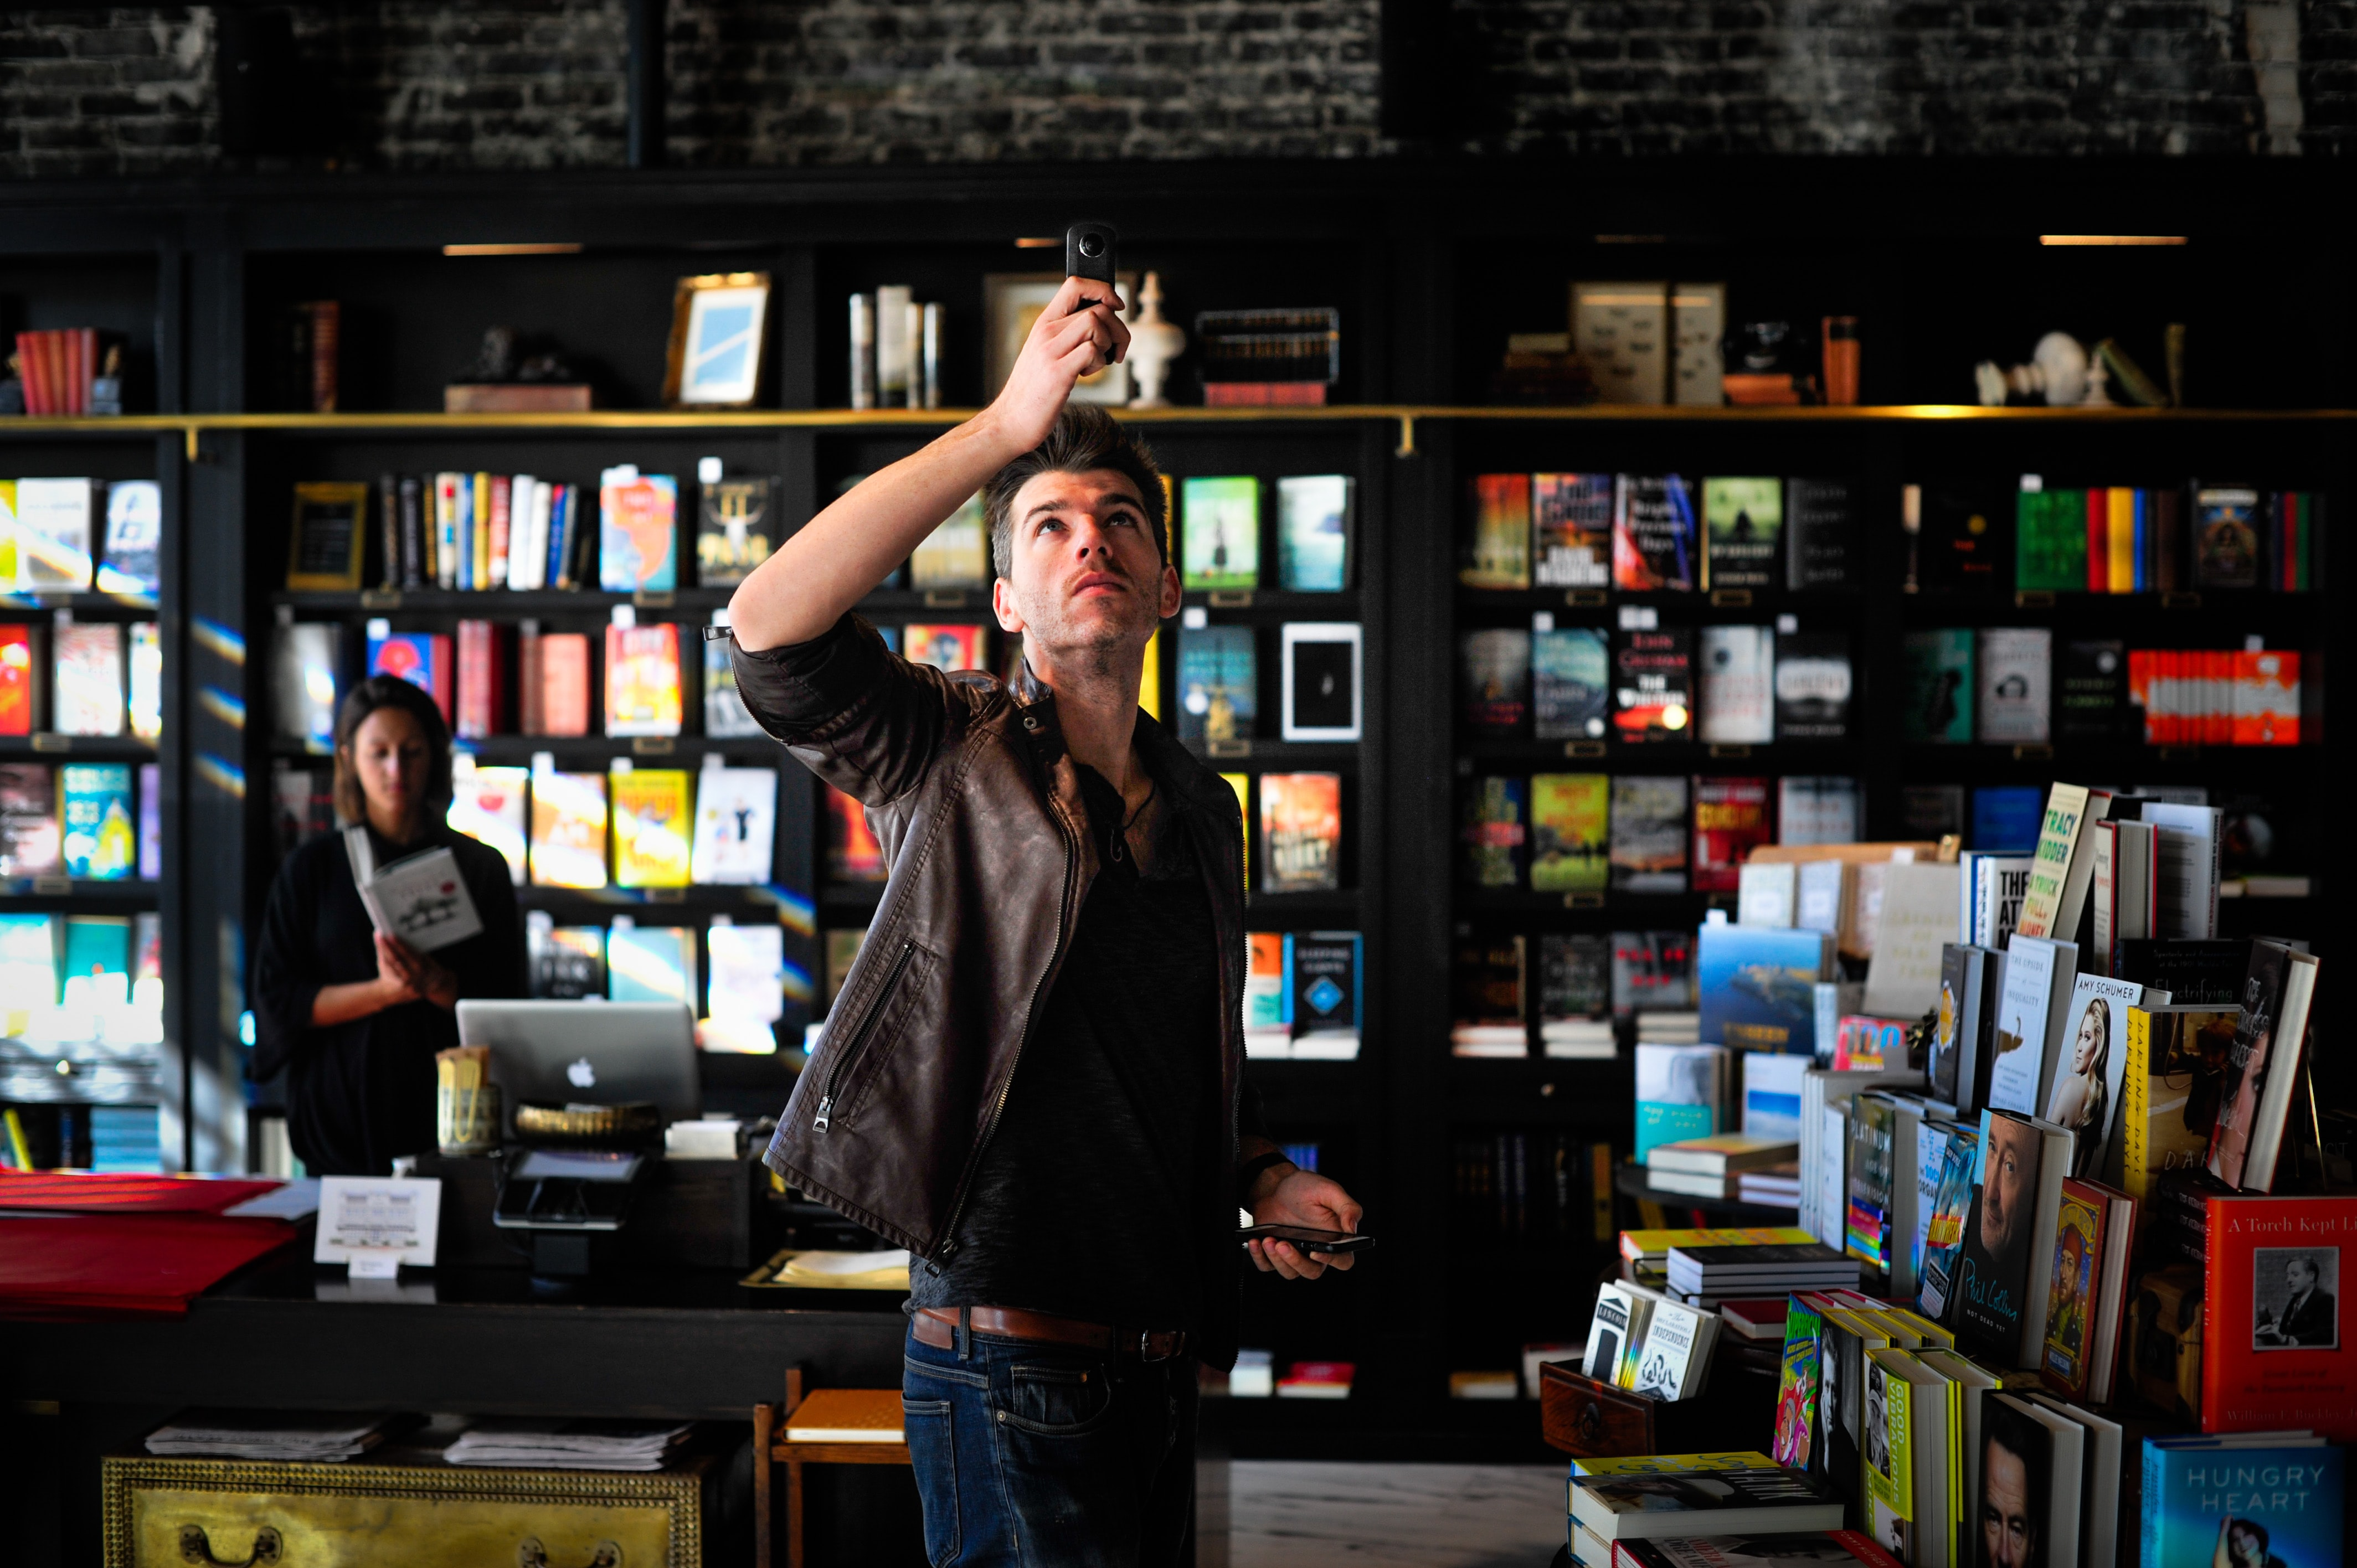 A man in a leather jacket lifting up an electronic device in a bookshop